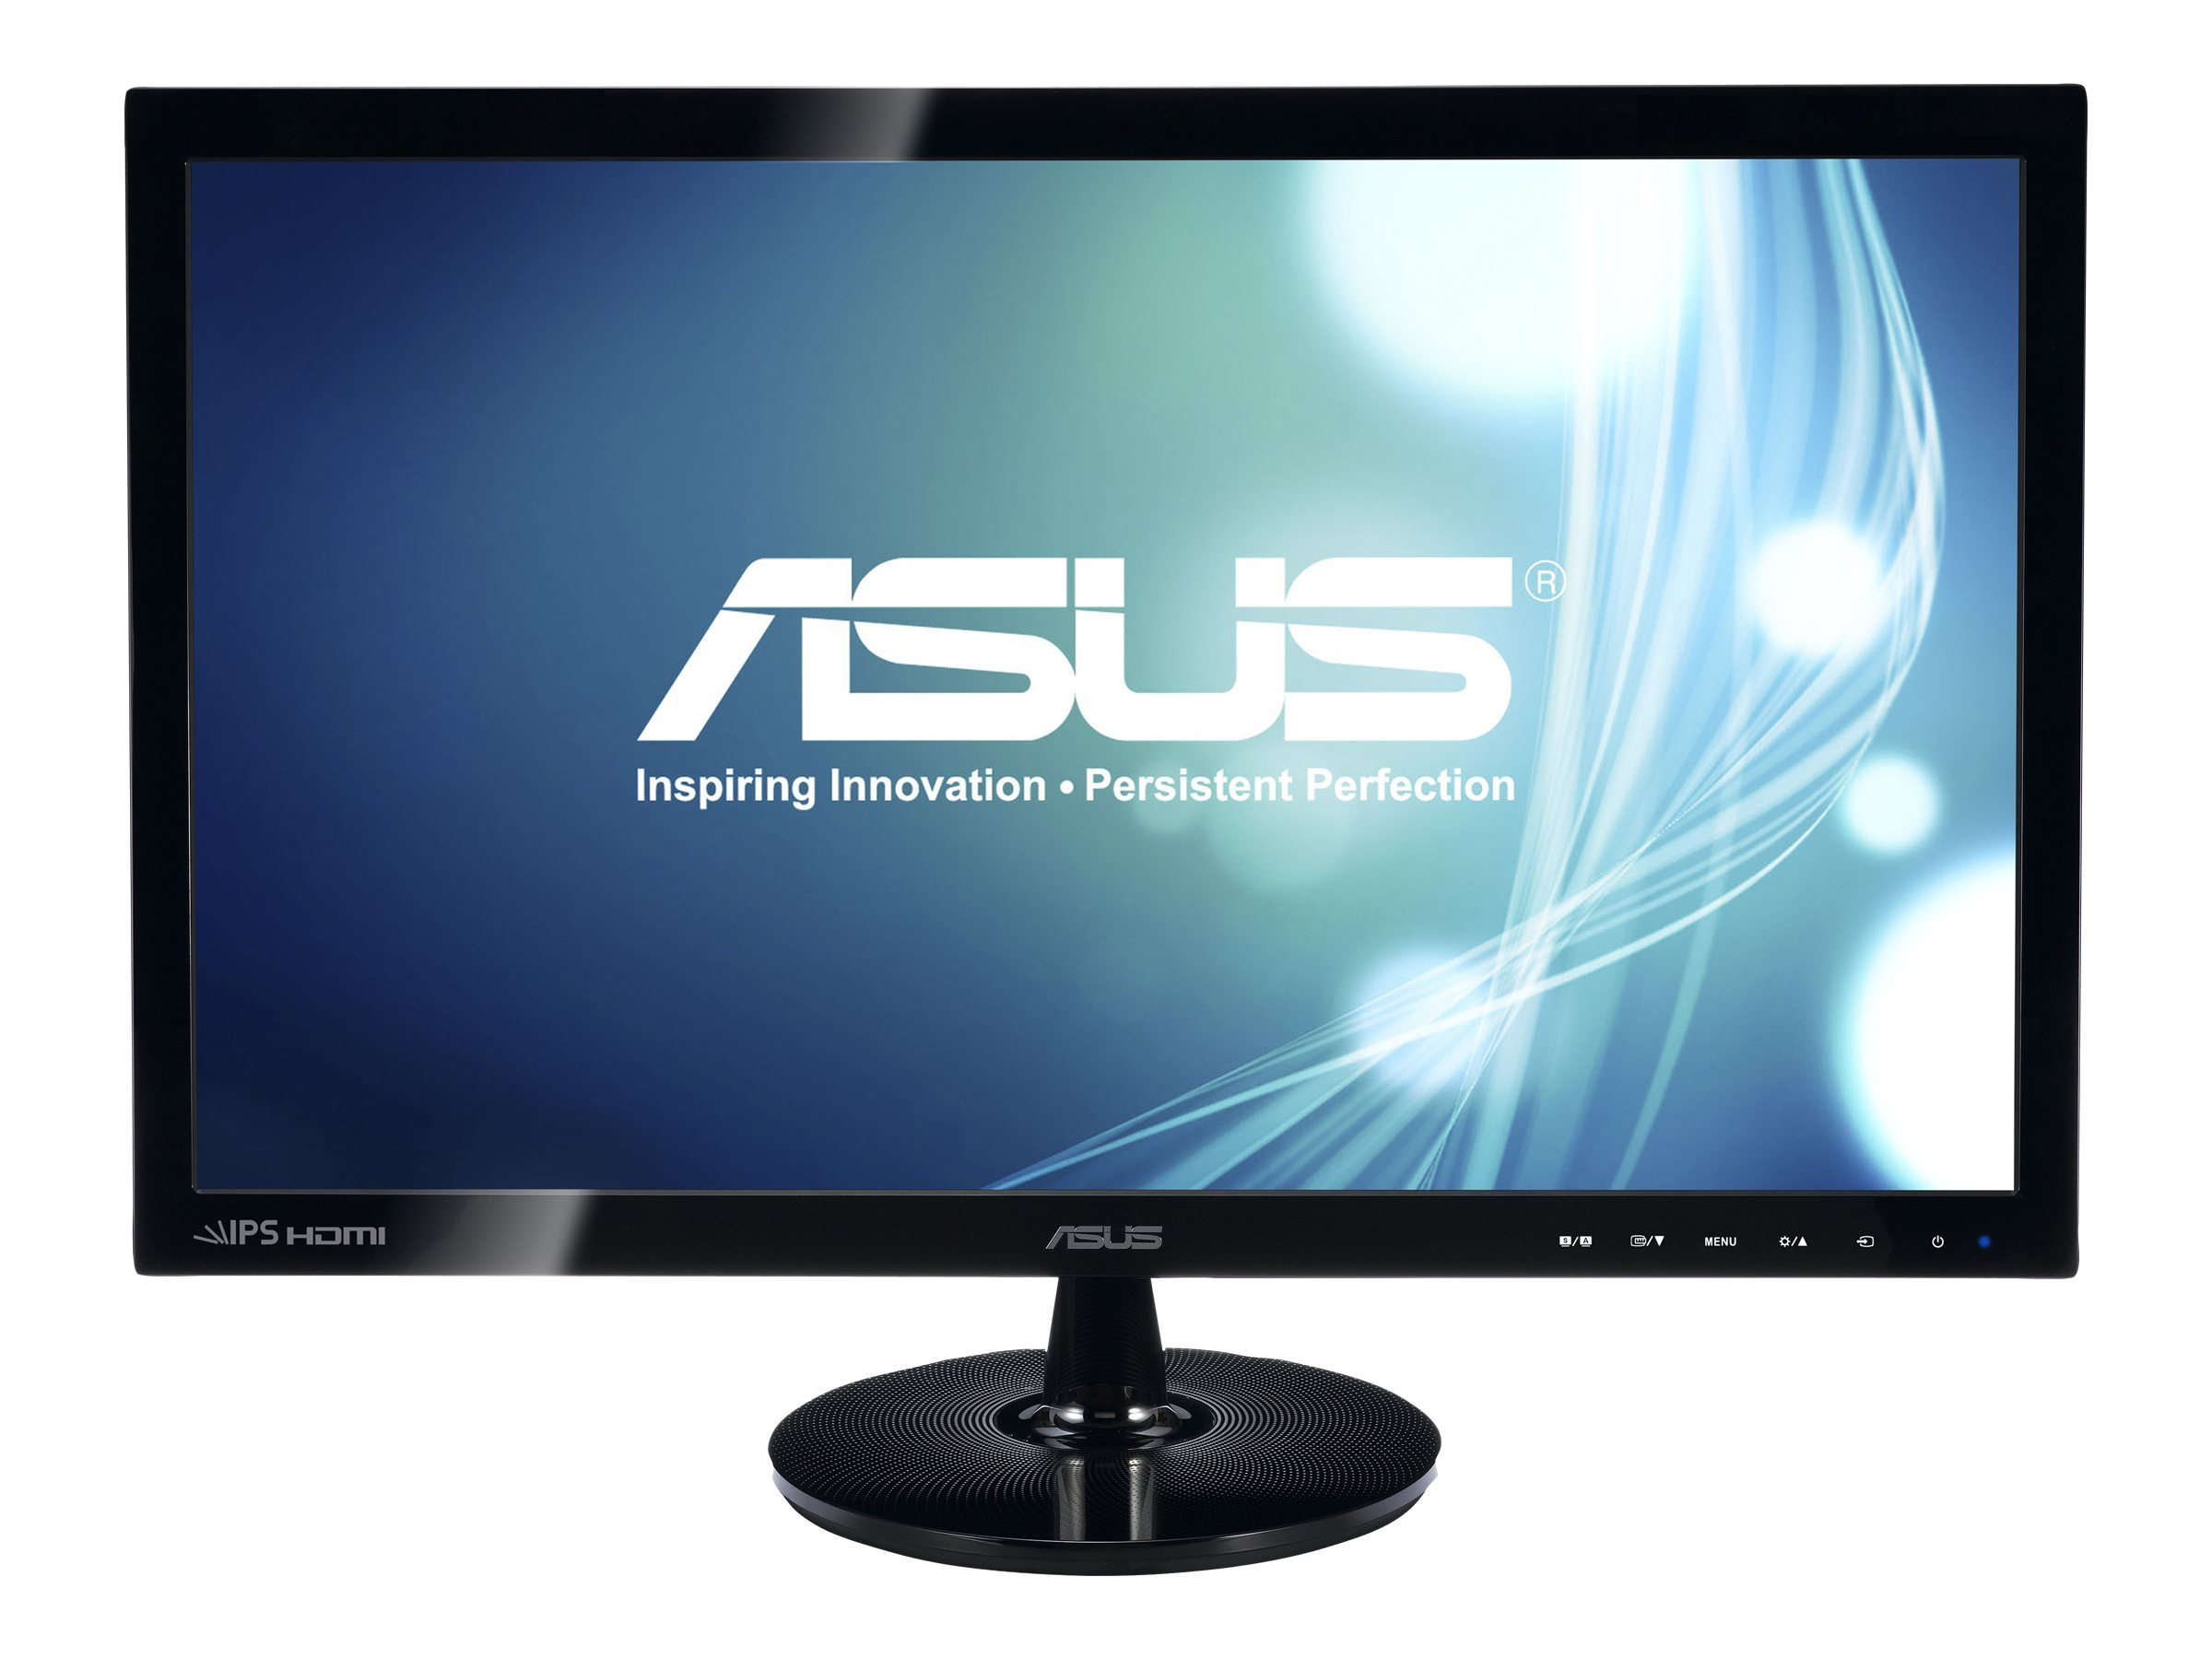 Asus 23 VS239H-P LED-LCD Full HD Monitor, Black, VS239H-P, 14450580, Monitors - LED-LCD